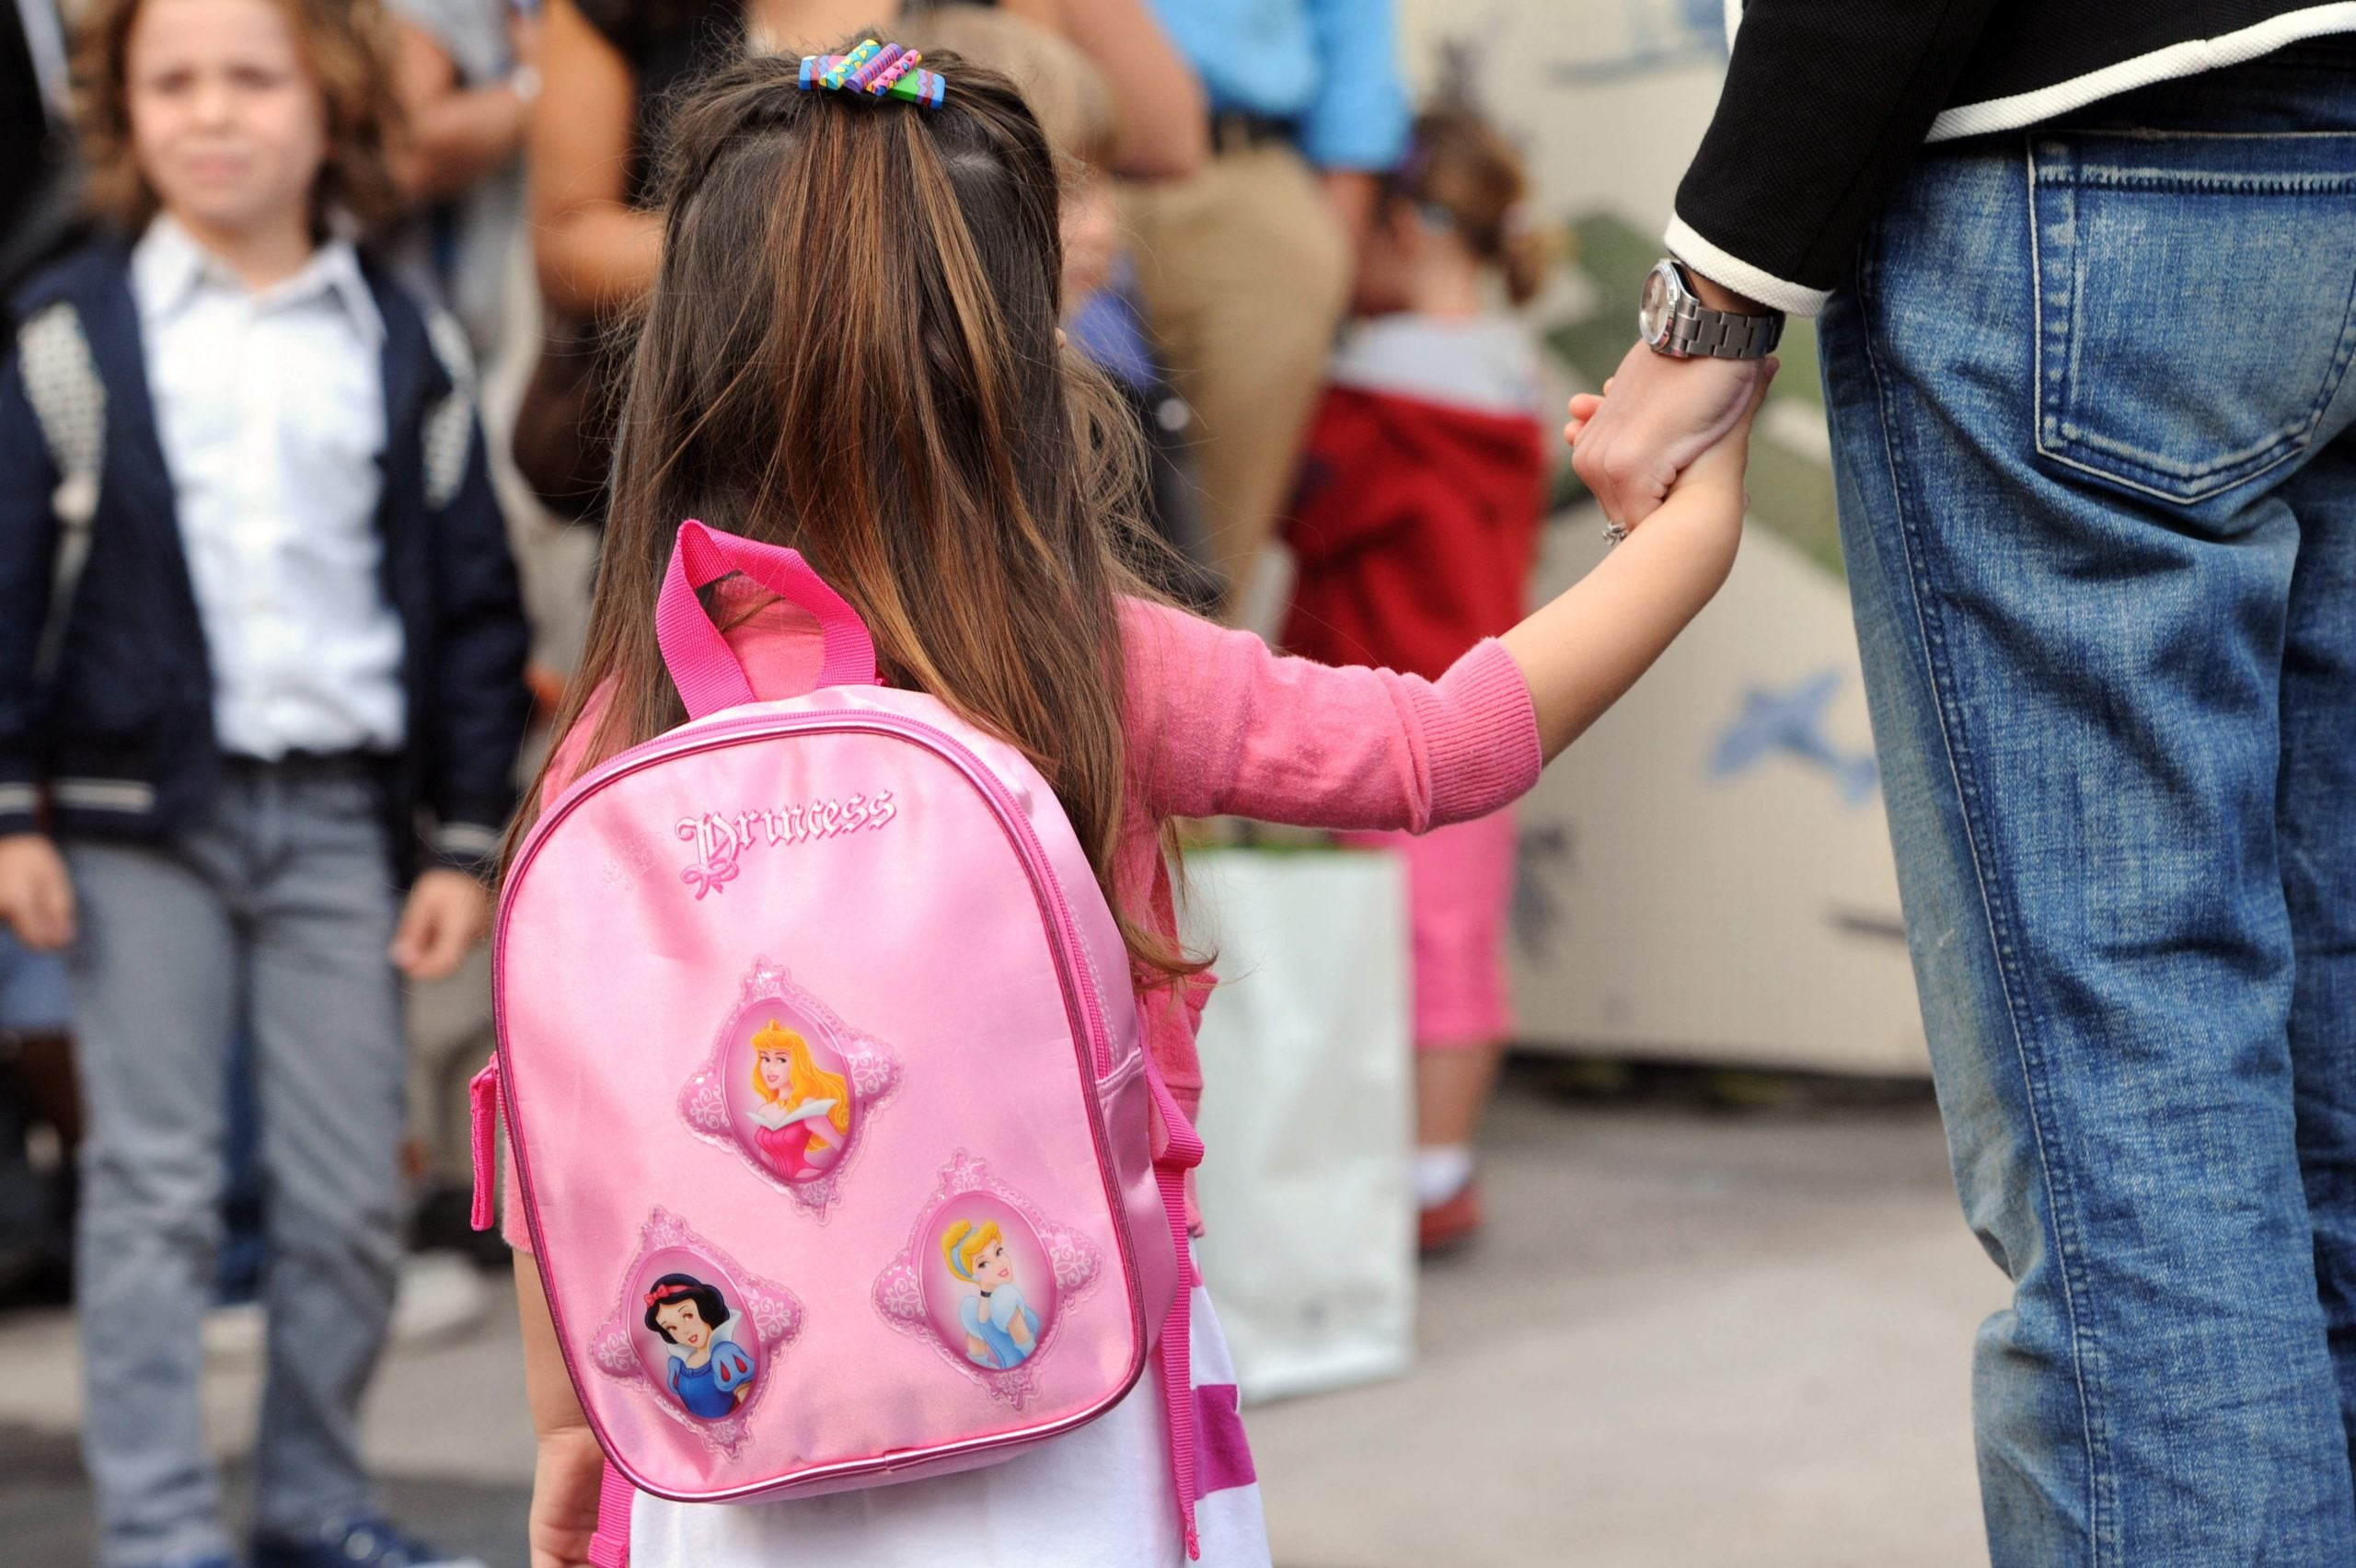 In child protection cases, healthy scepticism too often turns to dangerous distrust